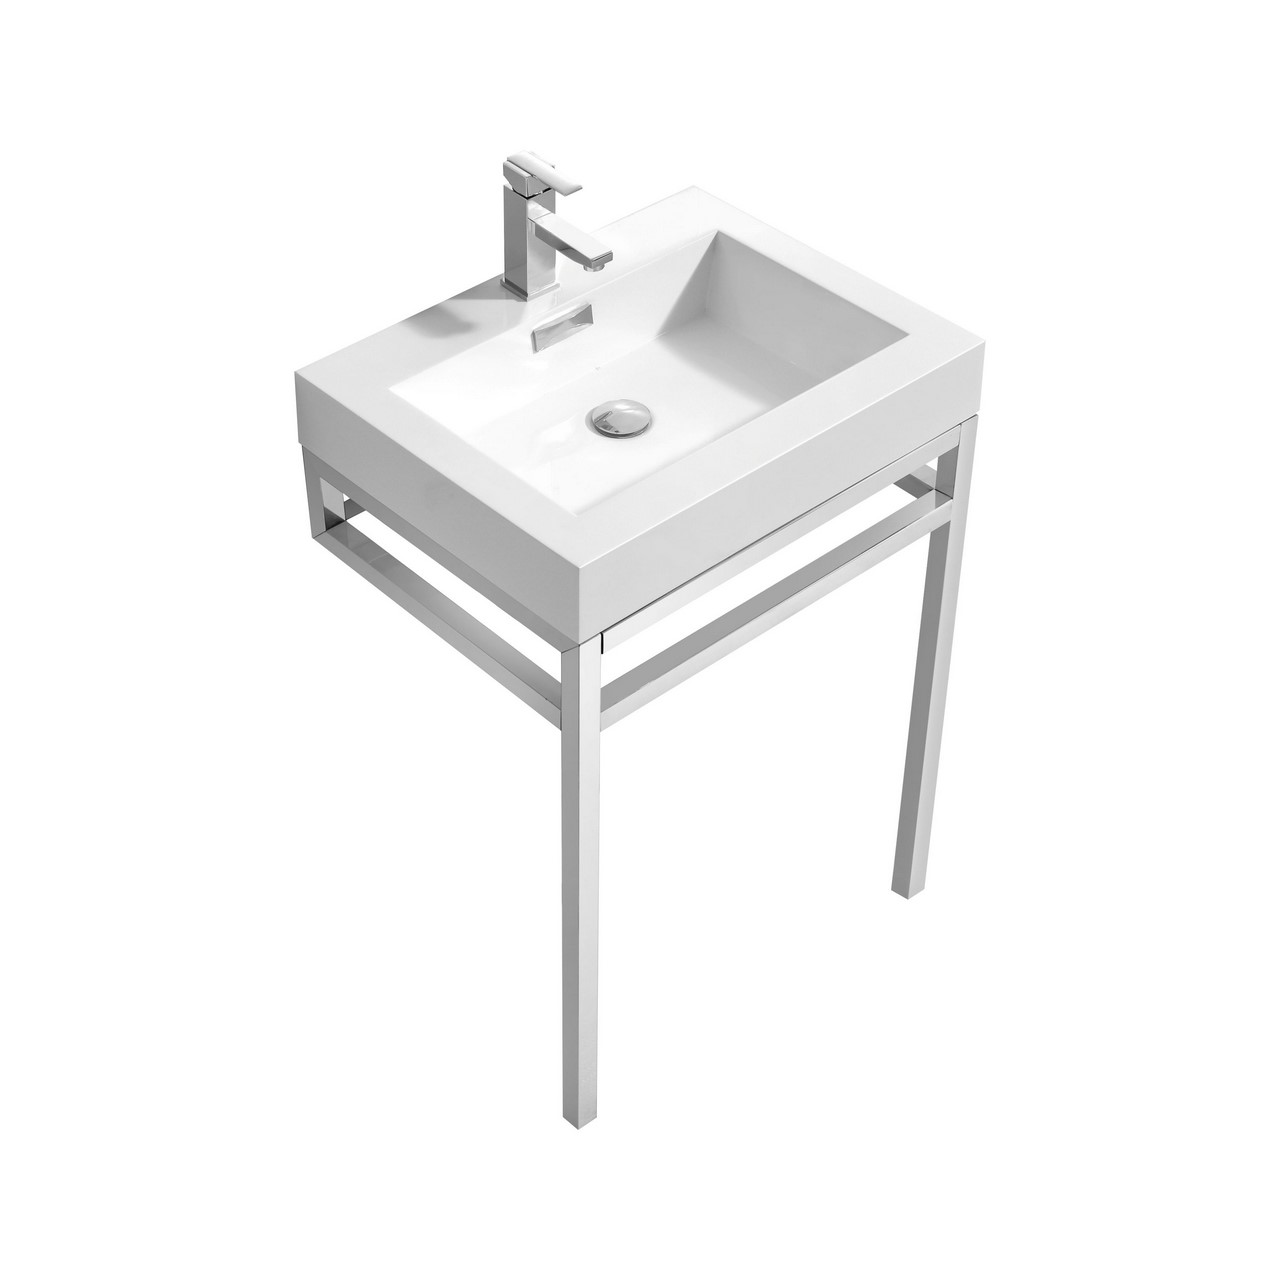 "Modern Lux 24"" Stainless Steel Console w/ White Acrylic Sink - Chrome"